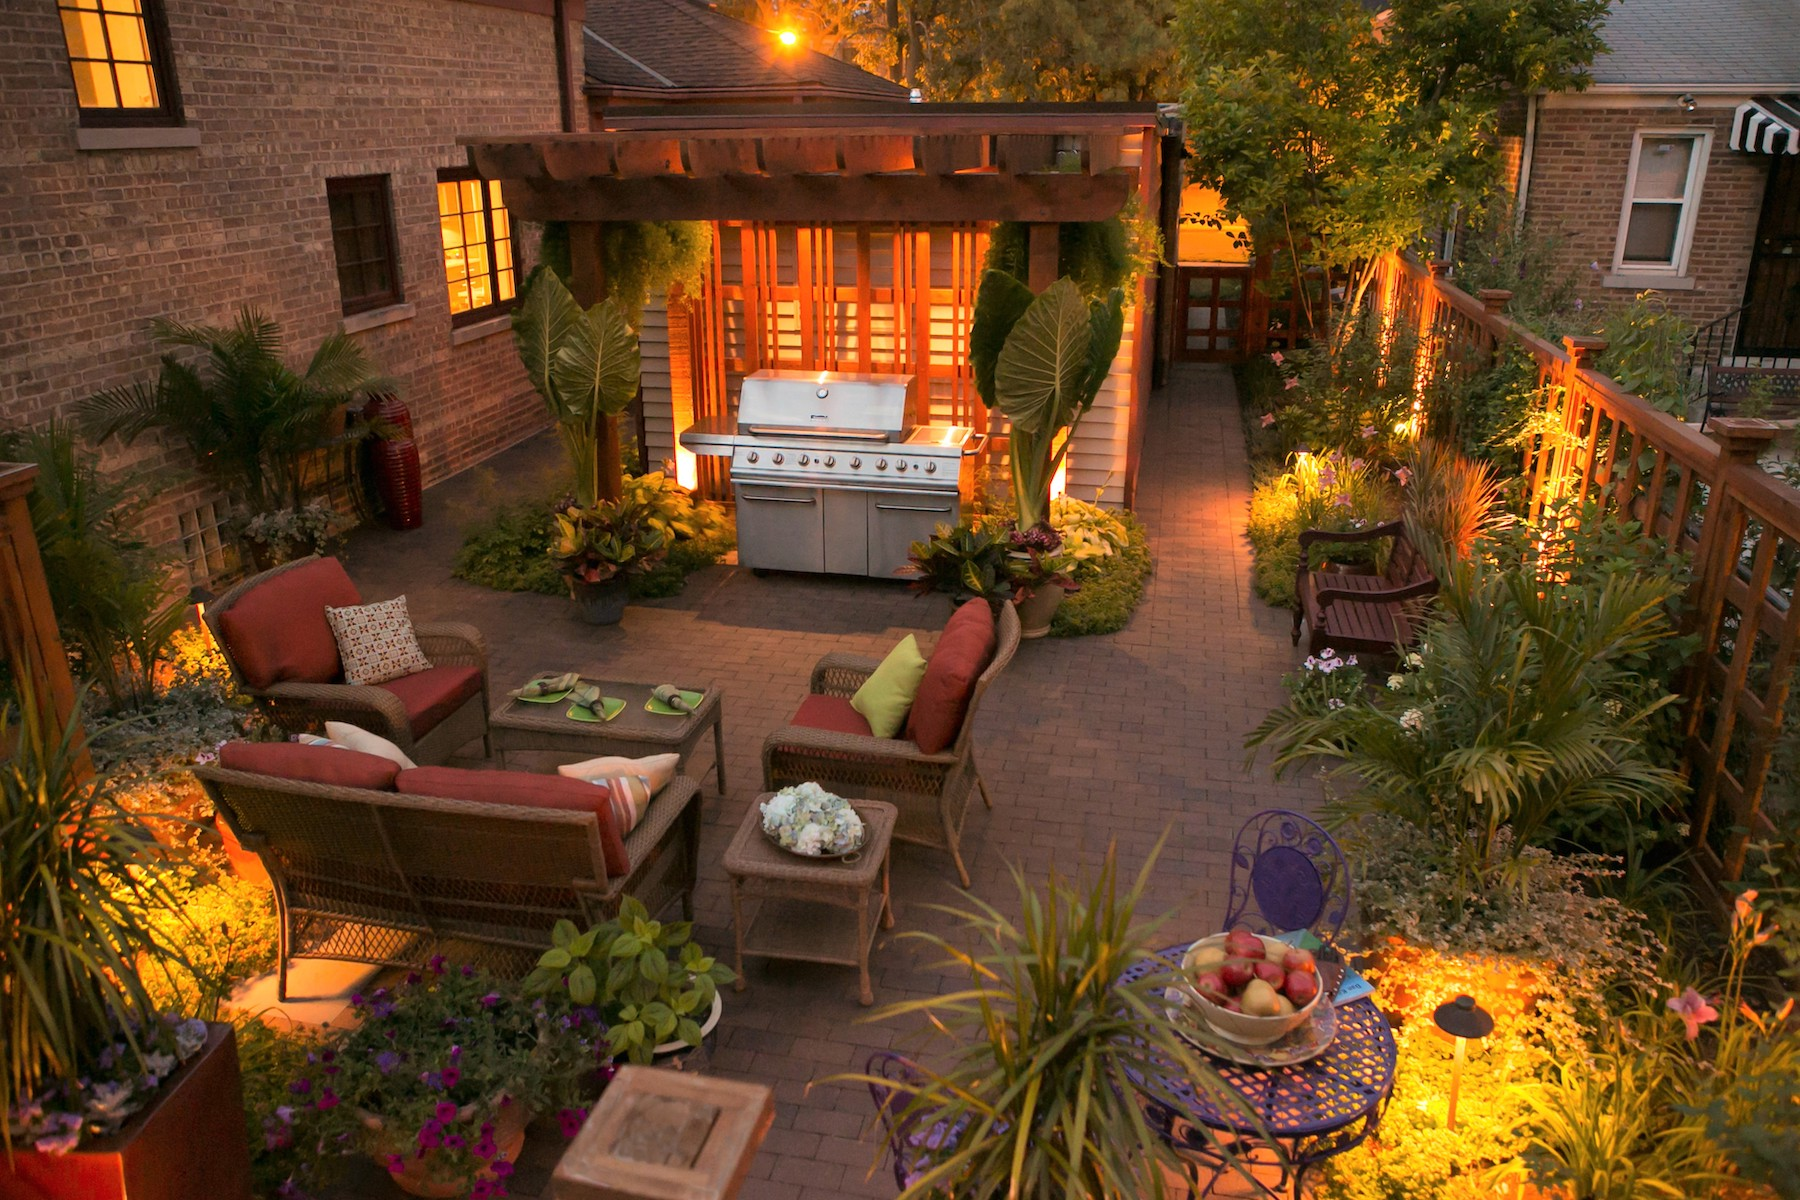 Landscaping 101: Small Space Gardens